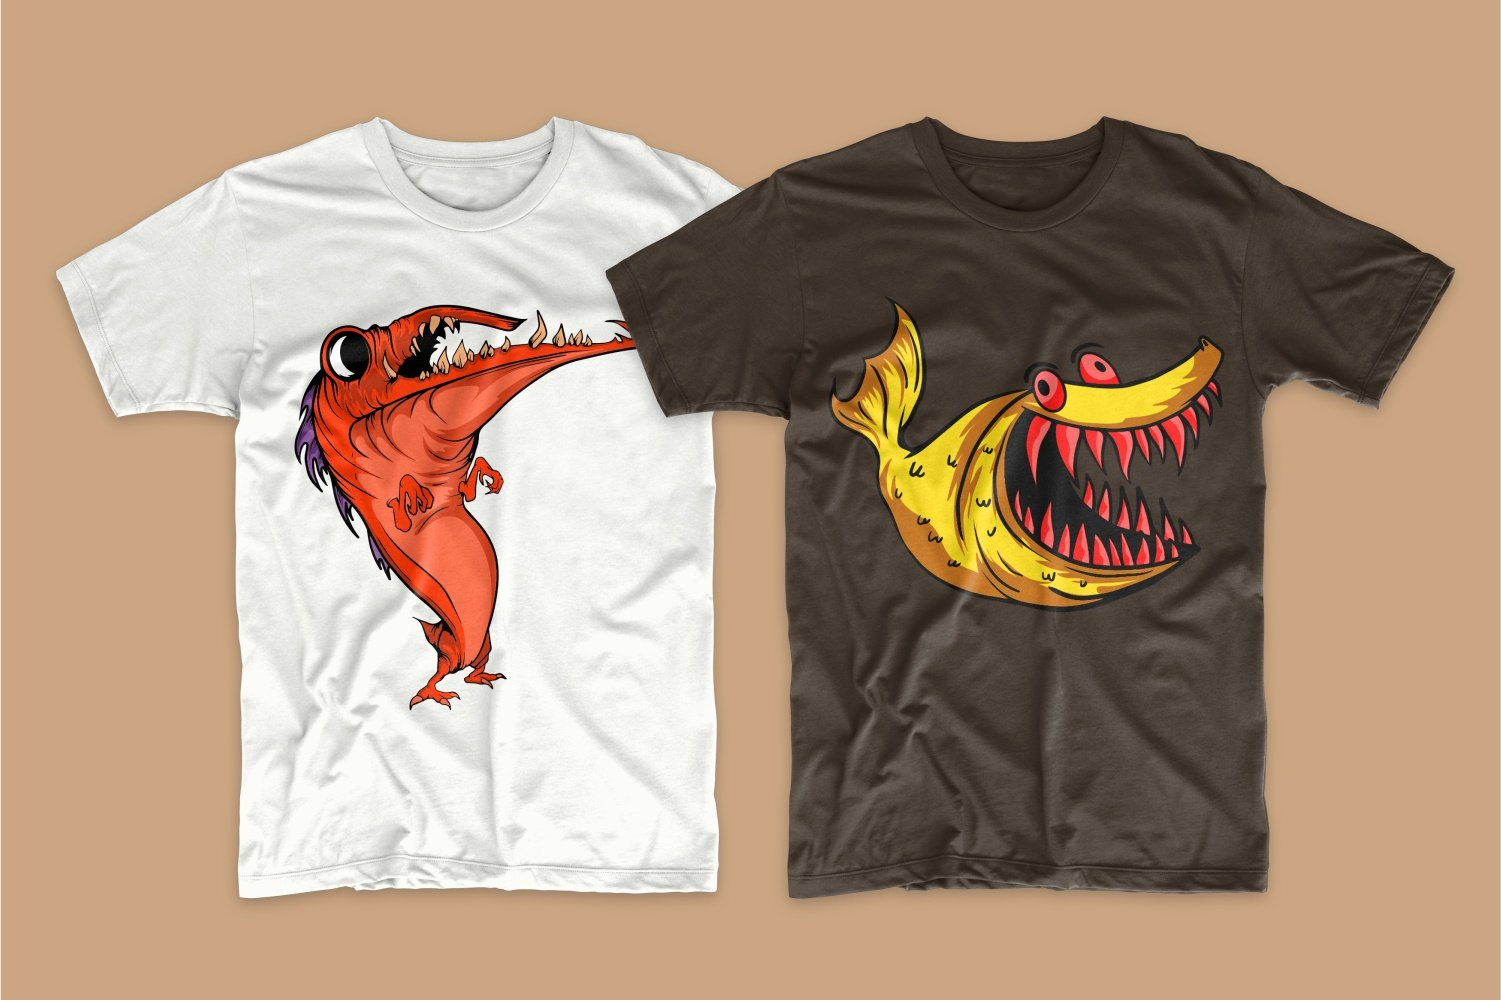 A white T-shirt with a red long-billed monster and a brown one with a yellow shark.